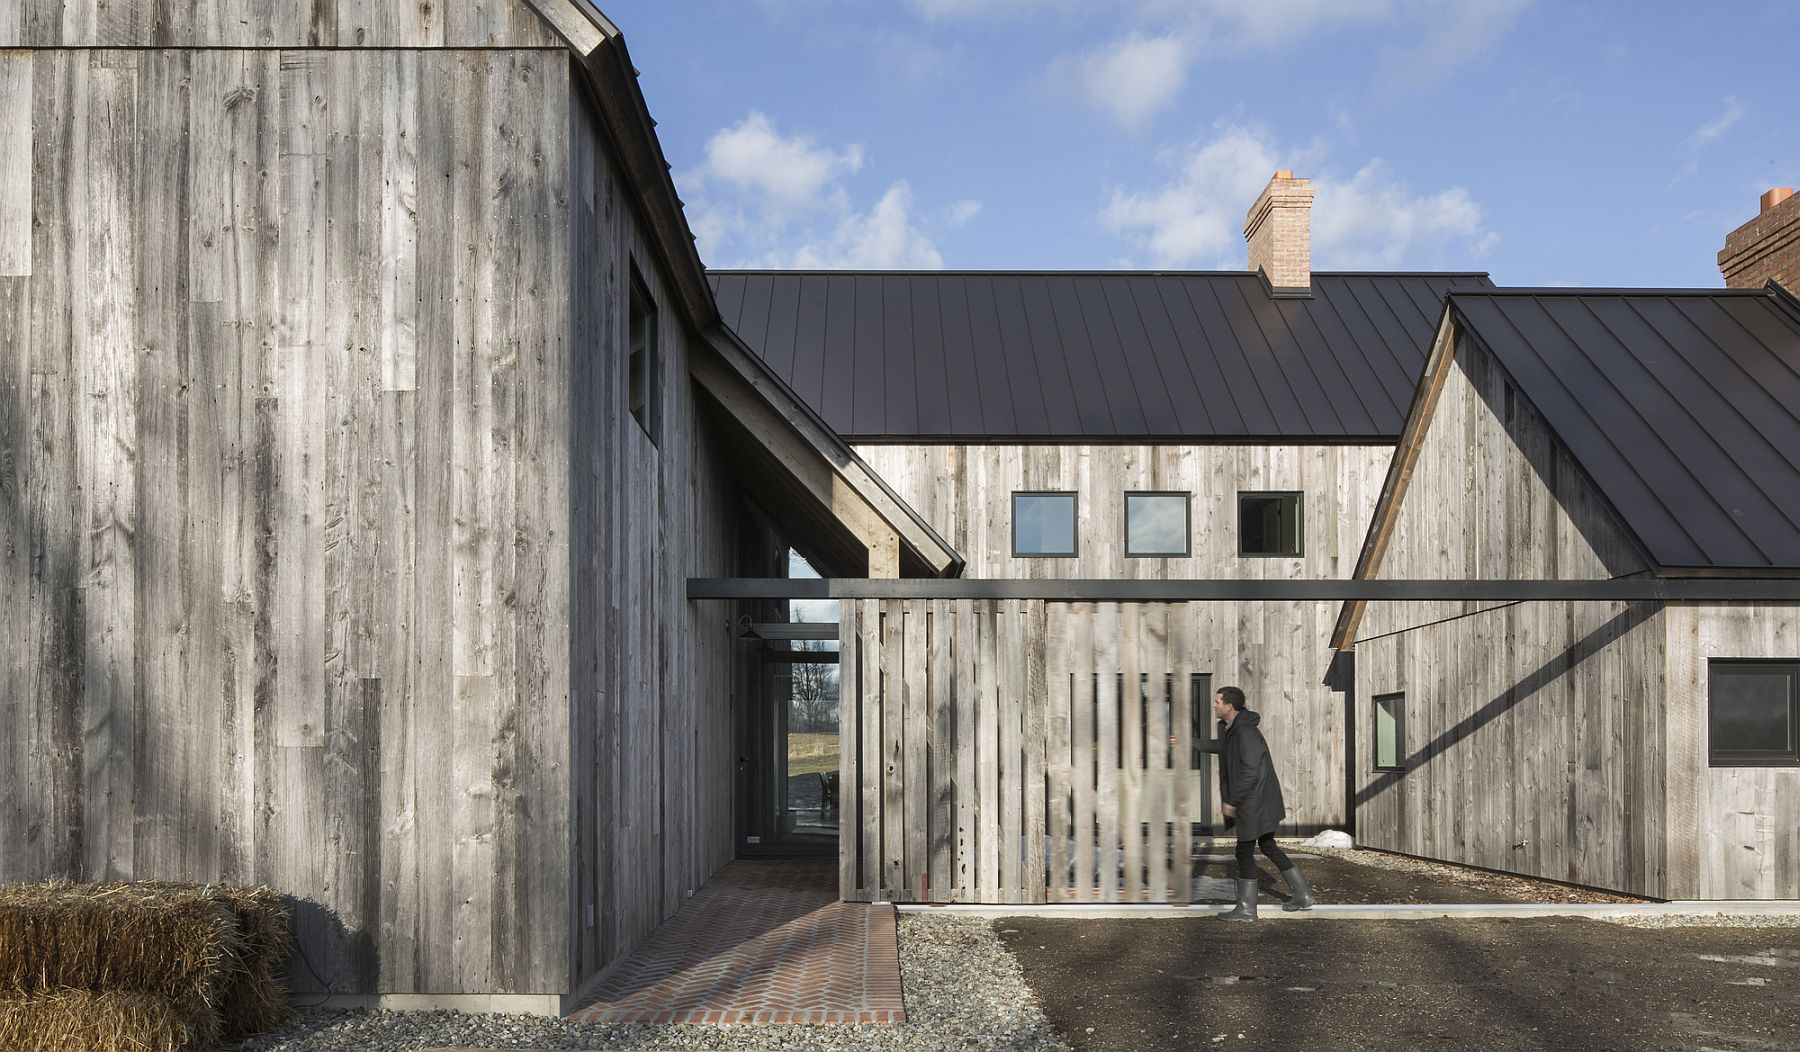 Sliding barn doors and wooden fences provide privacy and protection at the farmhouse